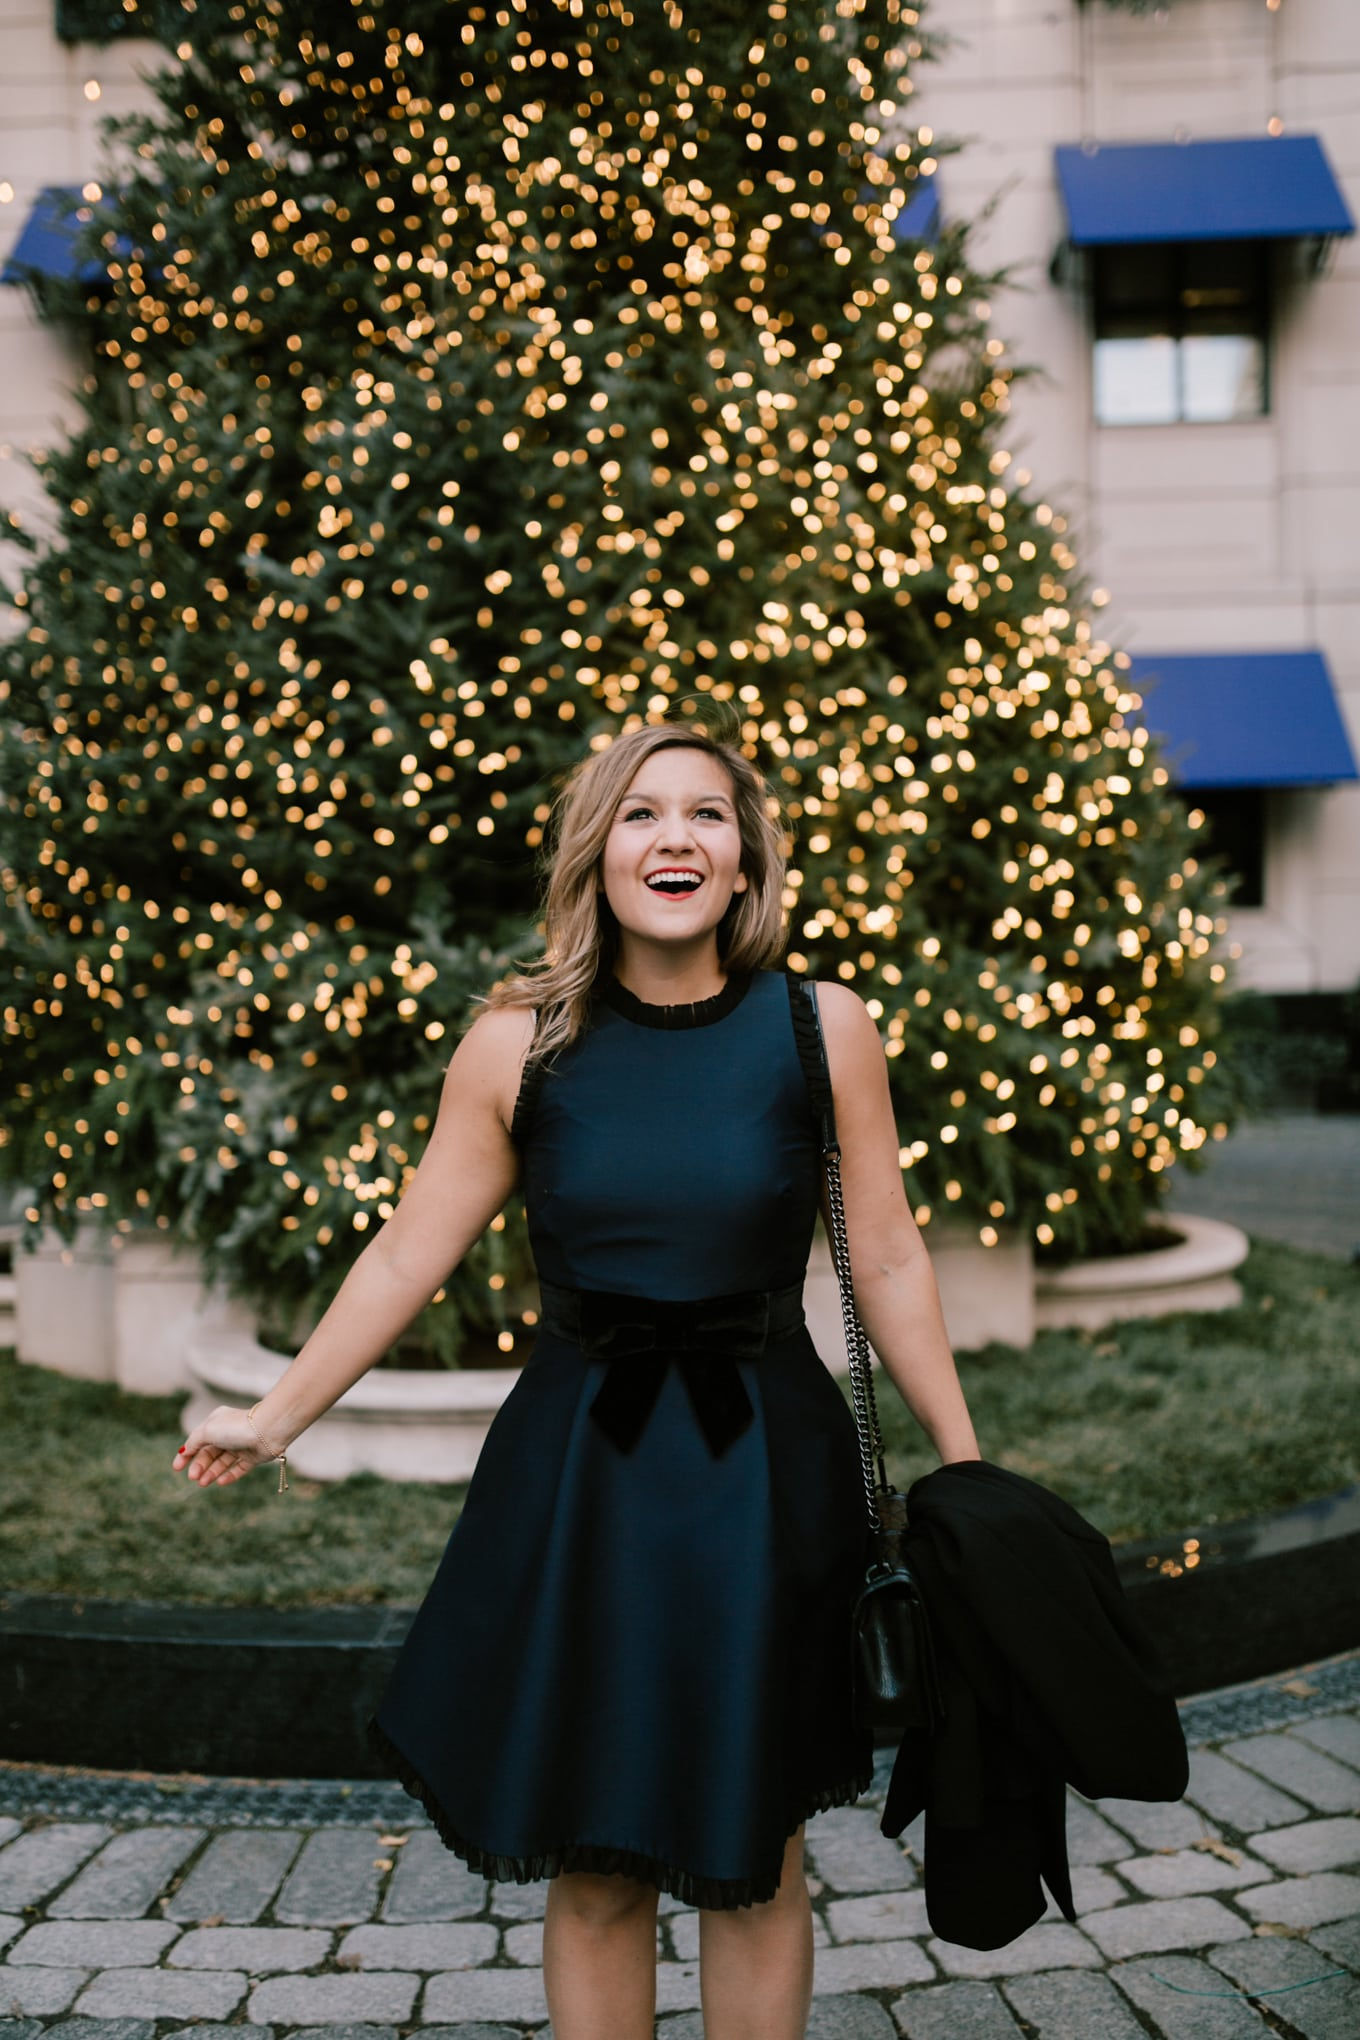 The perfect Christmas dress: Kate Spade velvet bow dress